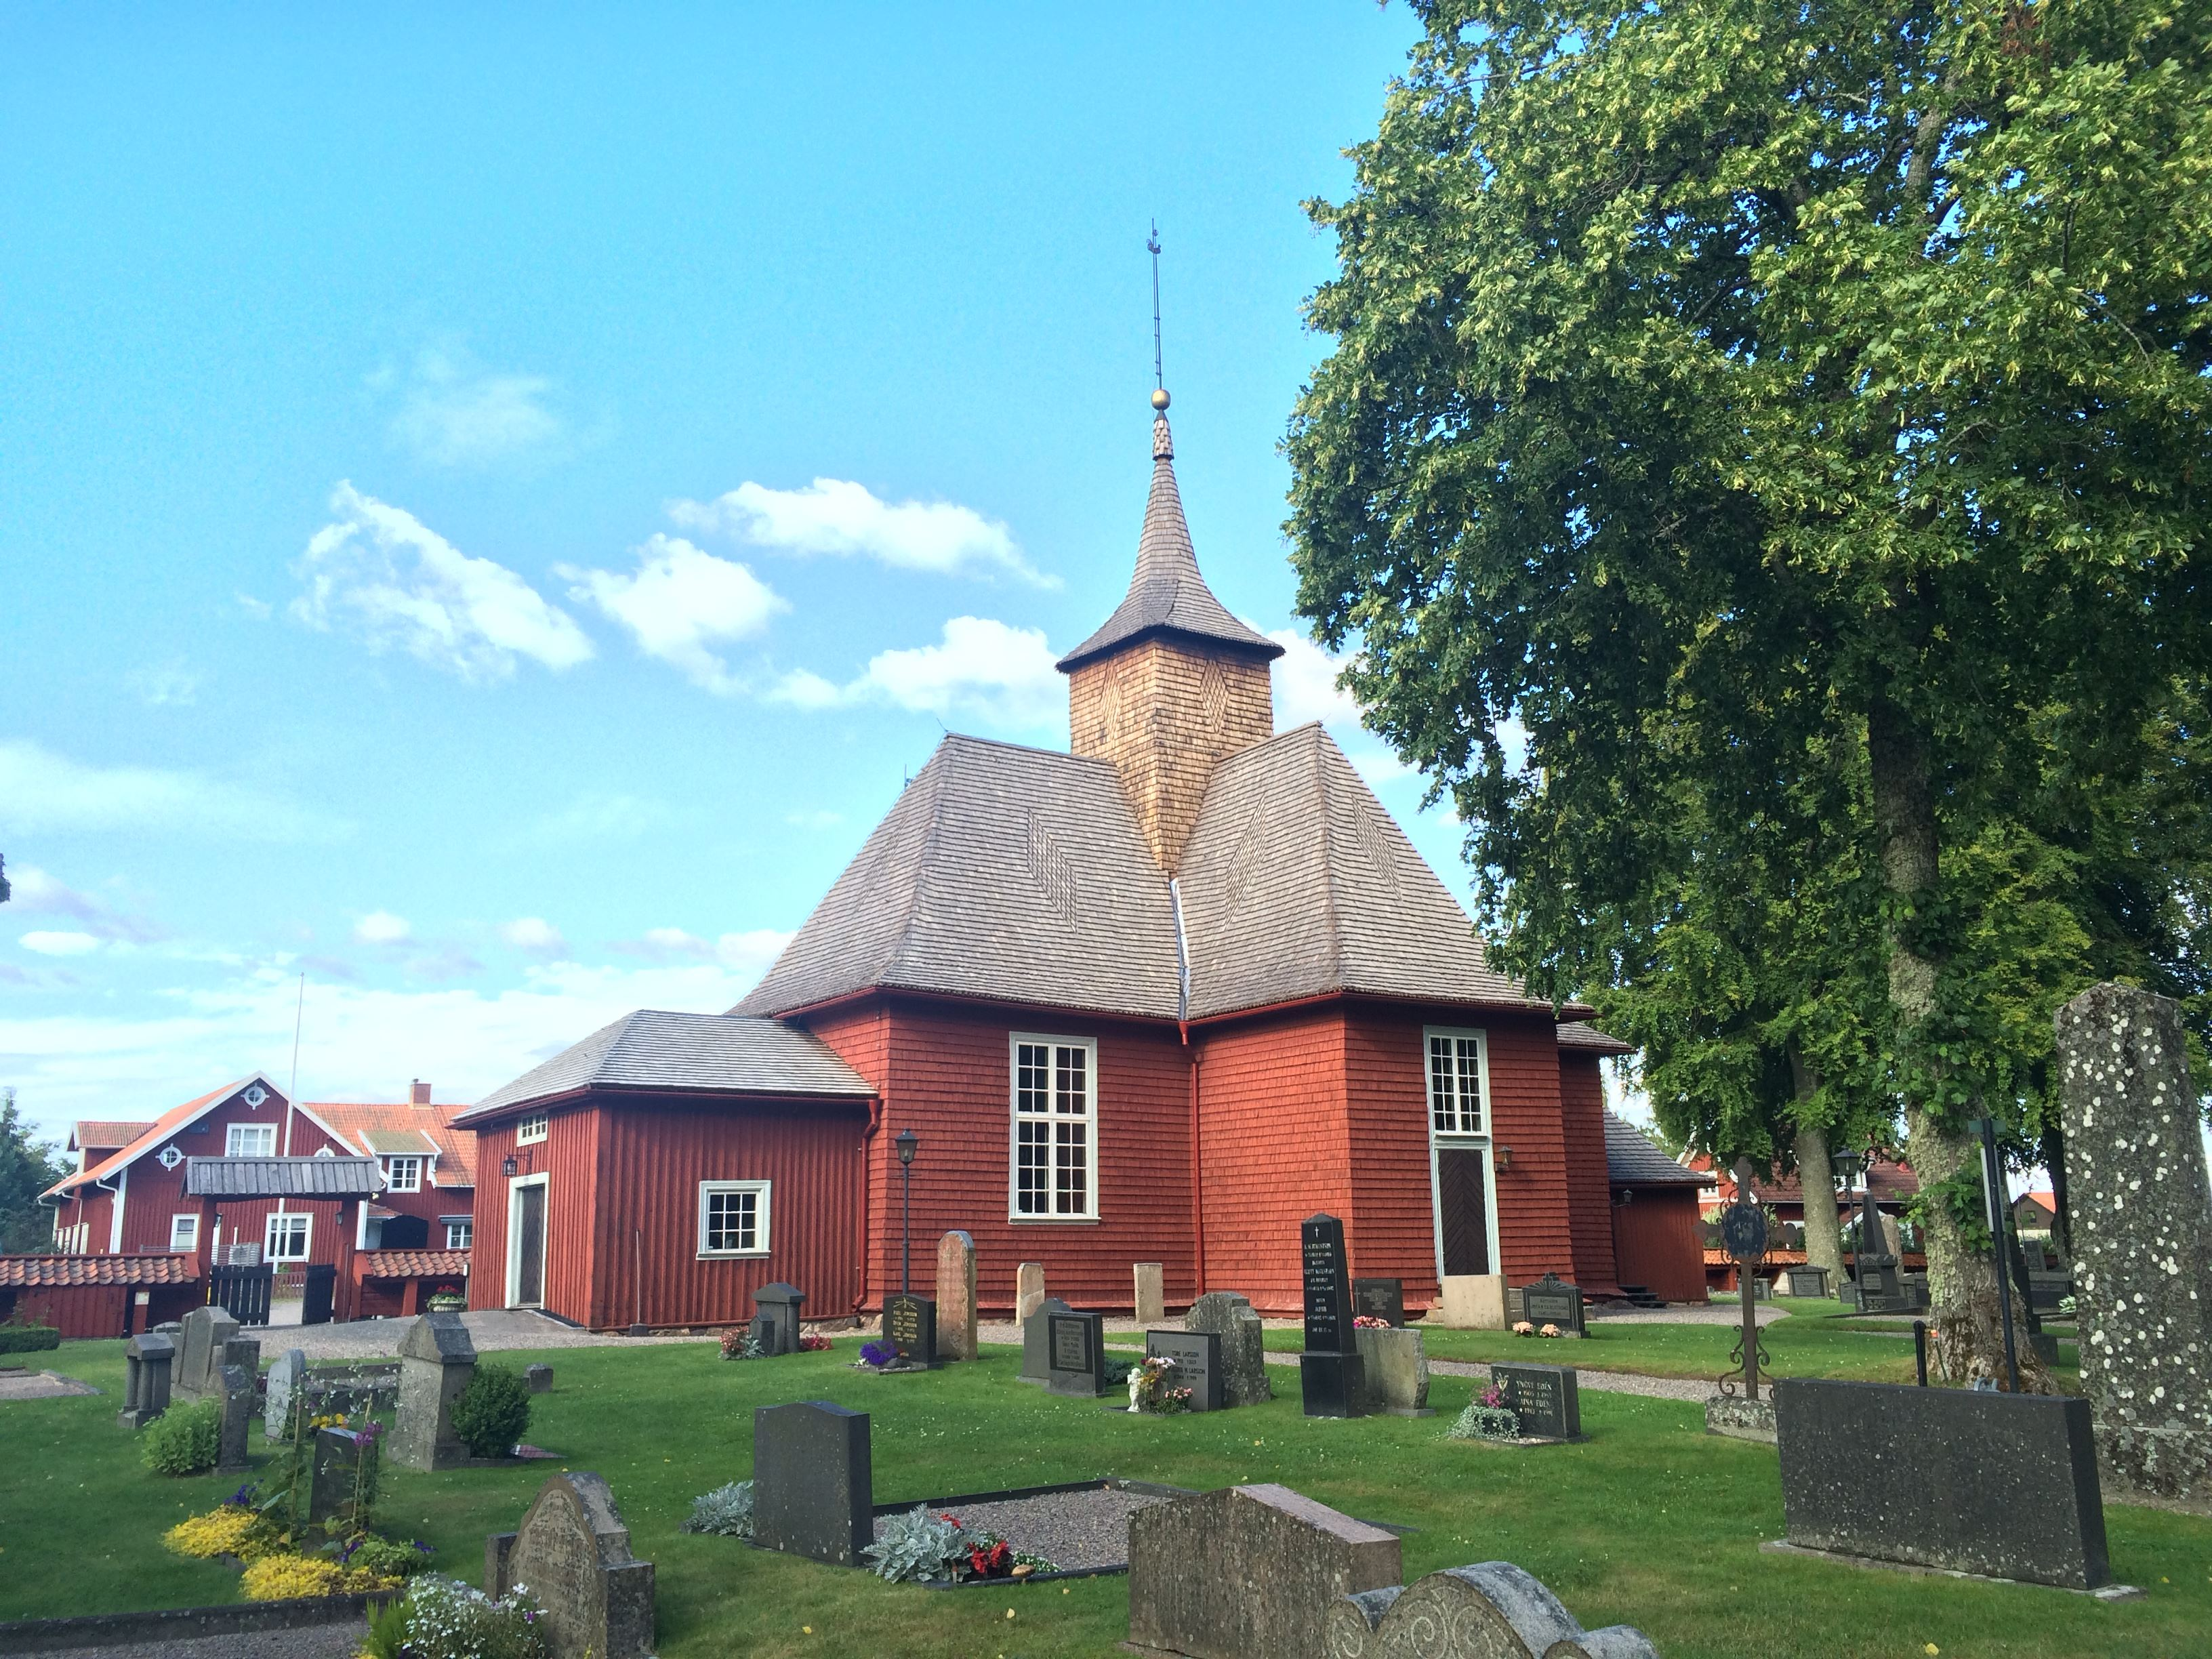 Brandstorp church